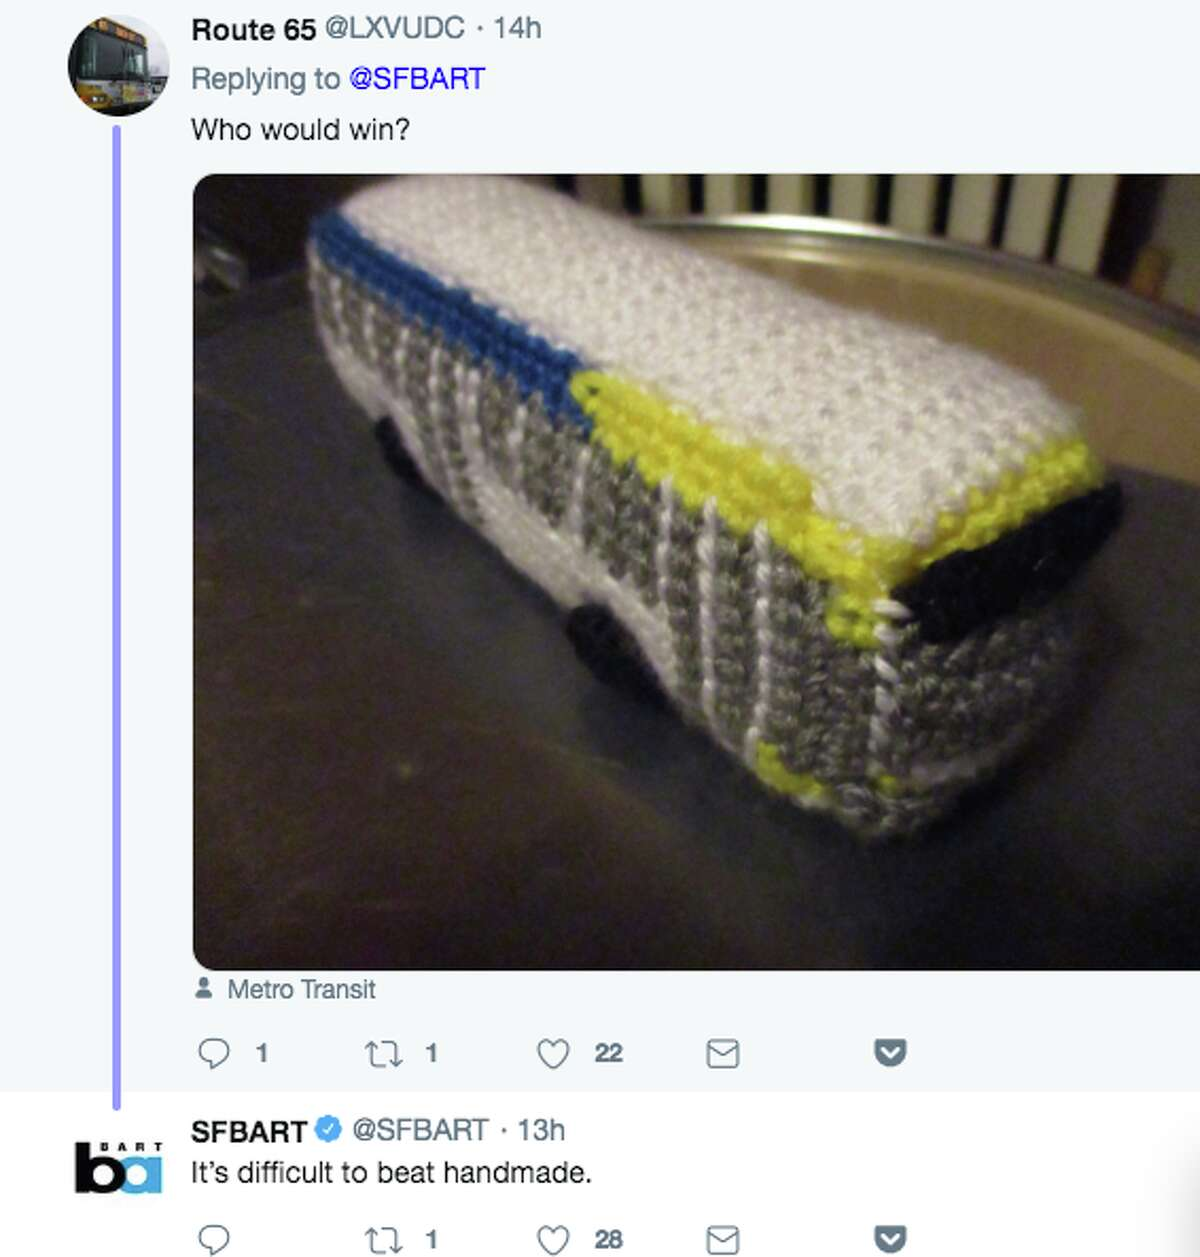 BART announced on Twitter that it is now selling a BART car toy at its Lake Merritt station and responded to readers' questions.